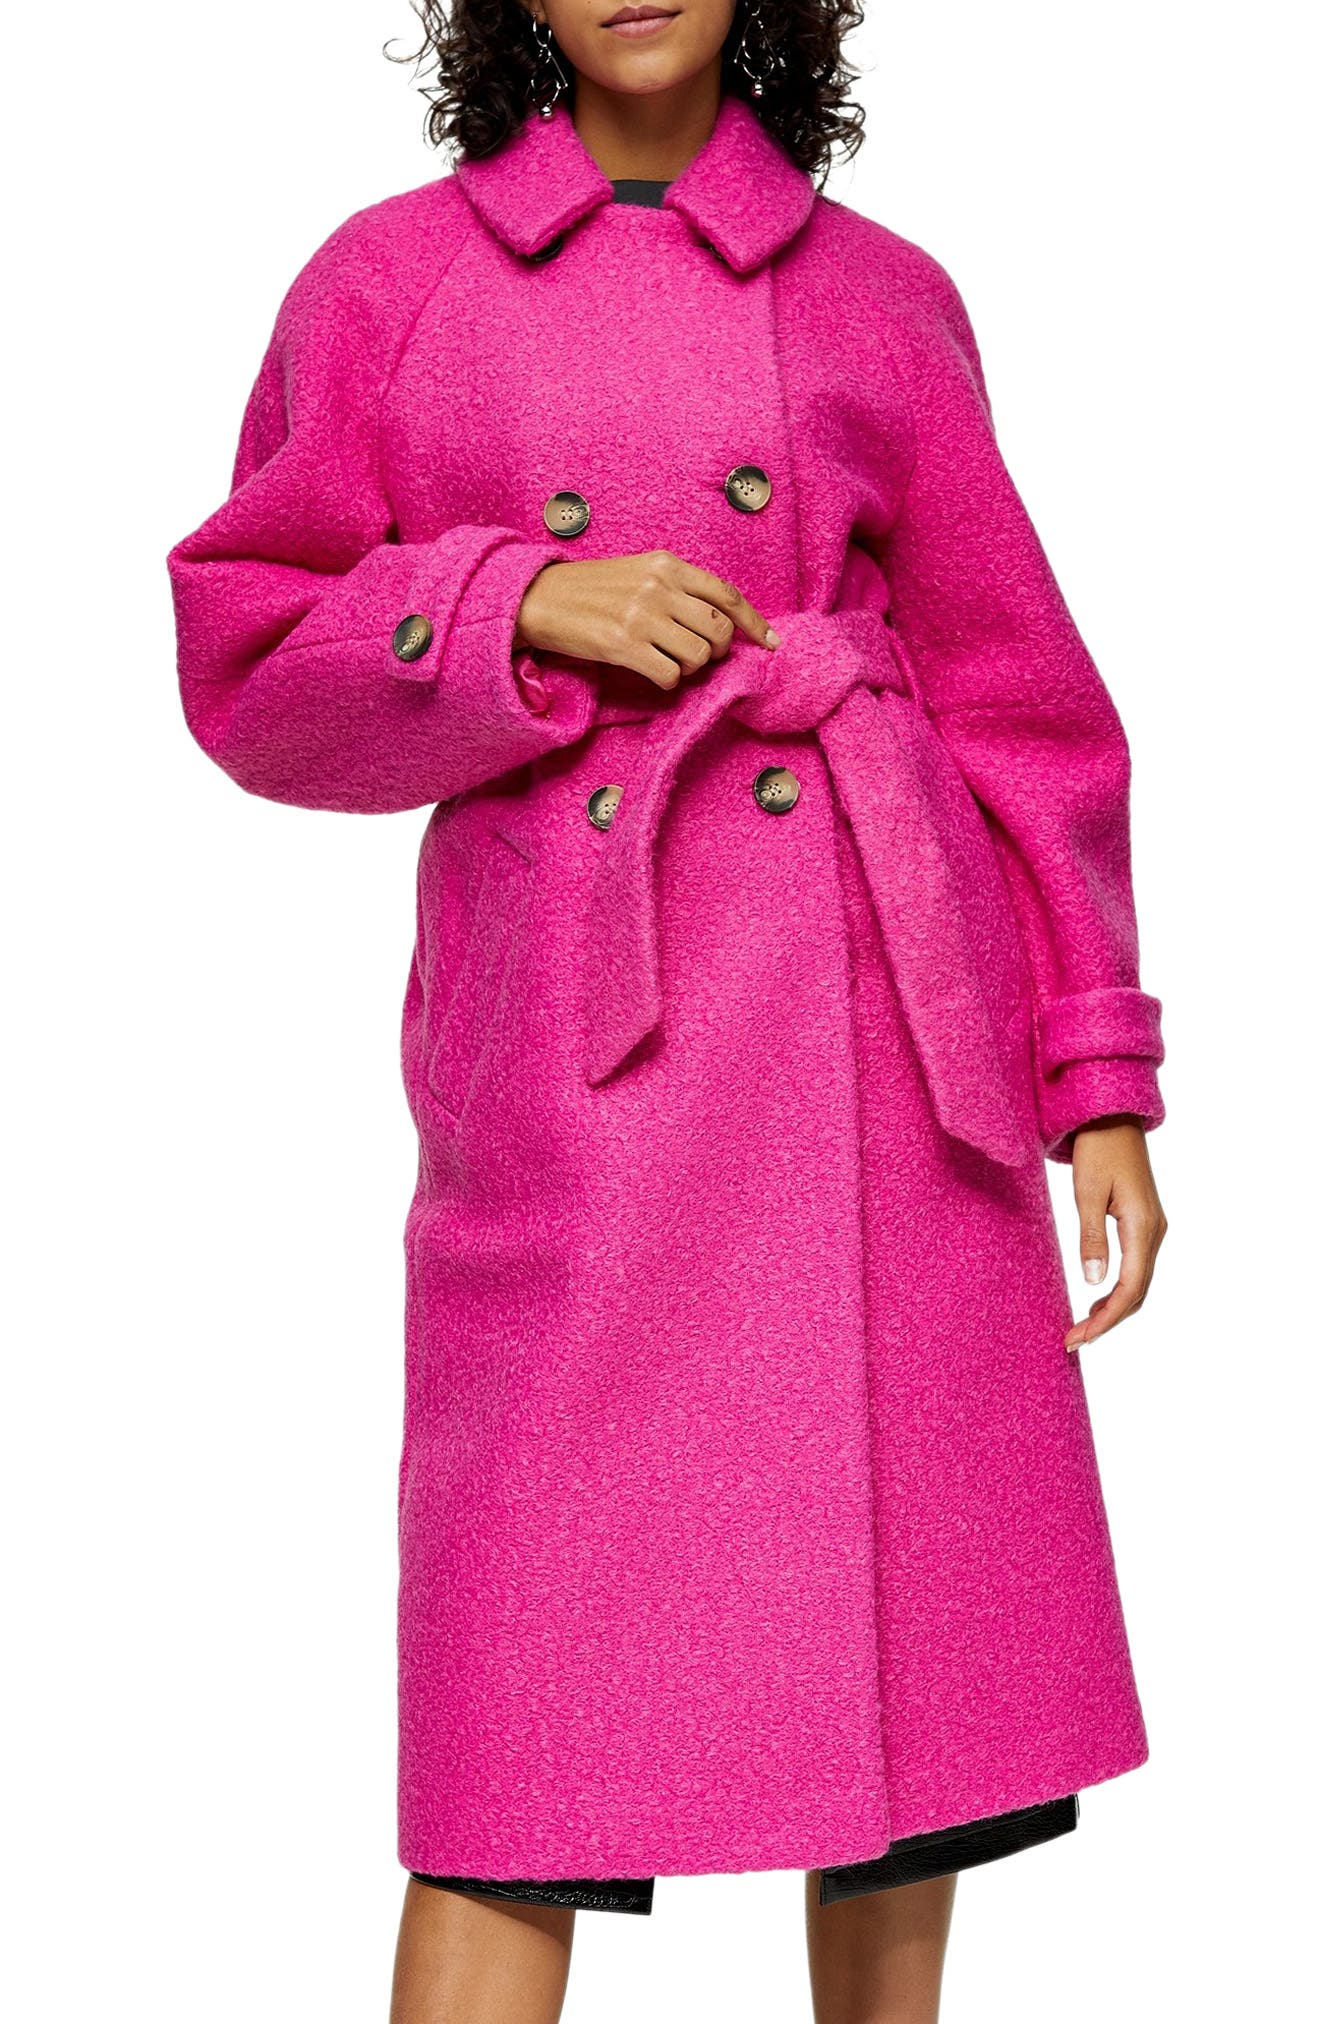 1950s Jackets, Coats, Bolero | Swing, Pin Up, Rockabilly Womens Topshop Arin Boucle Trench Coat Size 12 US - Pink $150.00 AT vintagedancer.com